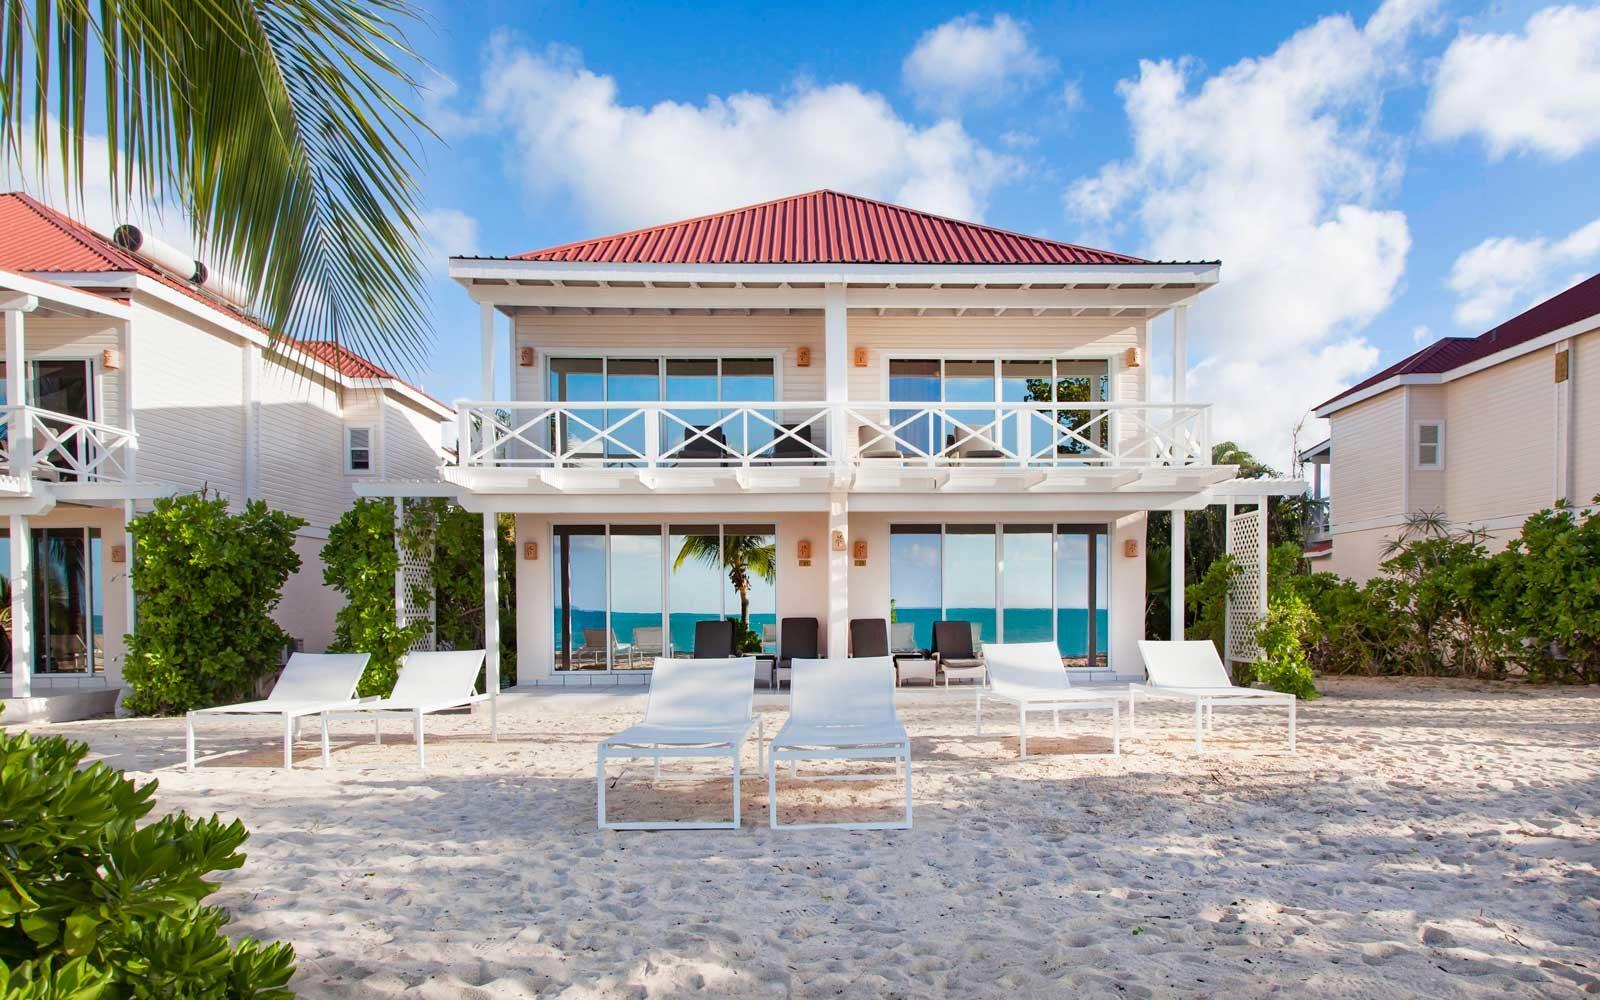 24. Galley Bay Resort & Spa, Antigua